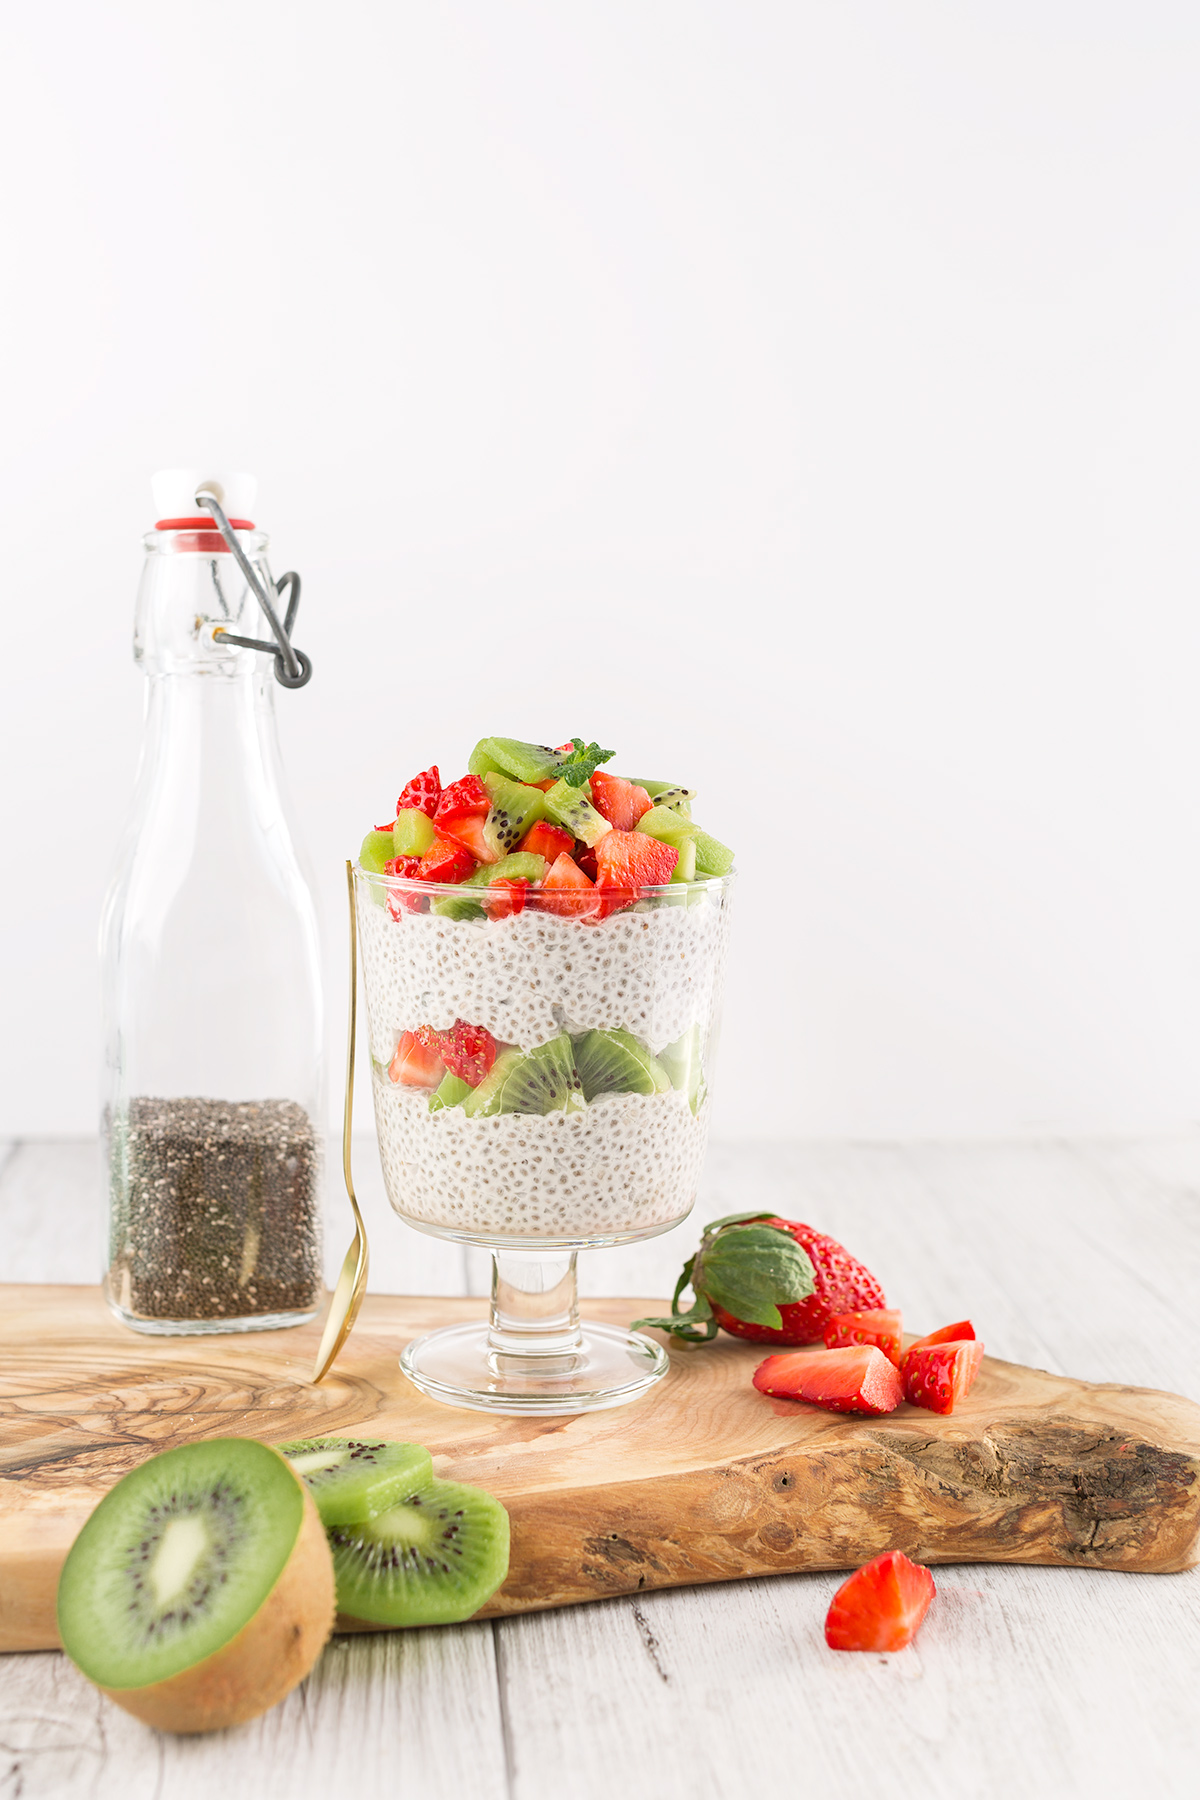 vegan simple CHIA SEED PUDDING basic recipe with strawberry CHIA PUDDING ricetta base BUDINO di SEMI di CHIA vegan senza glutine alle fragole